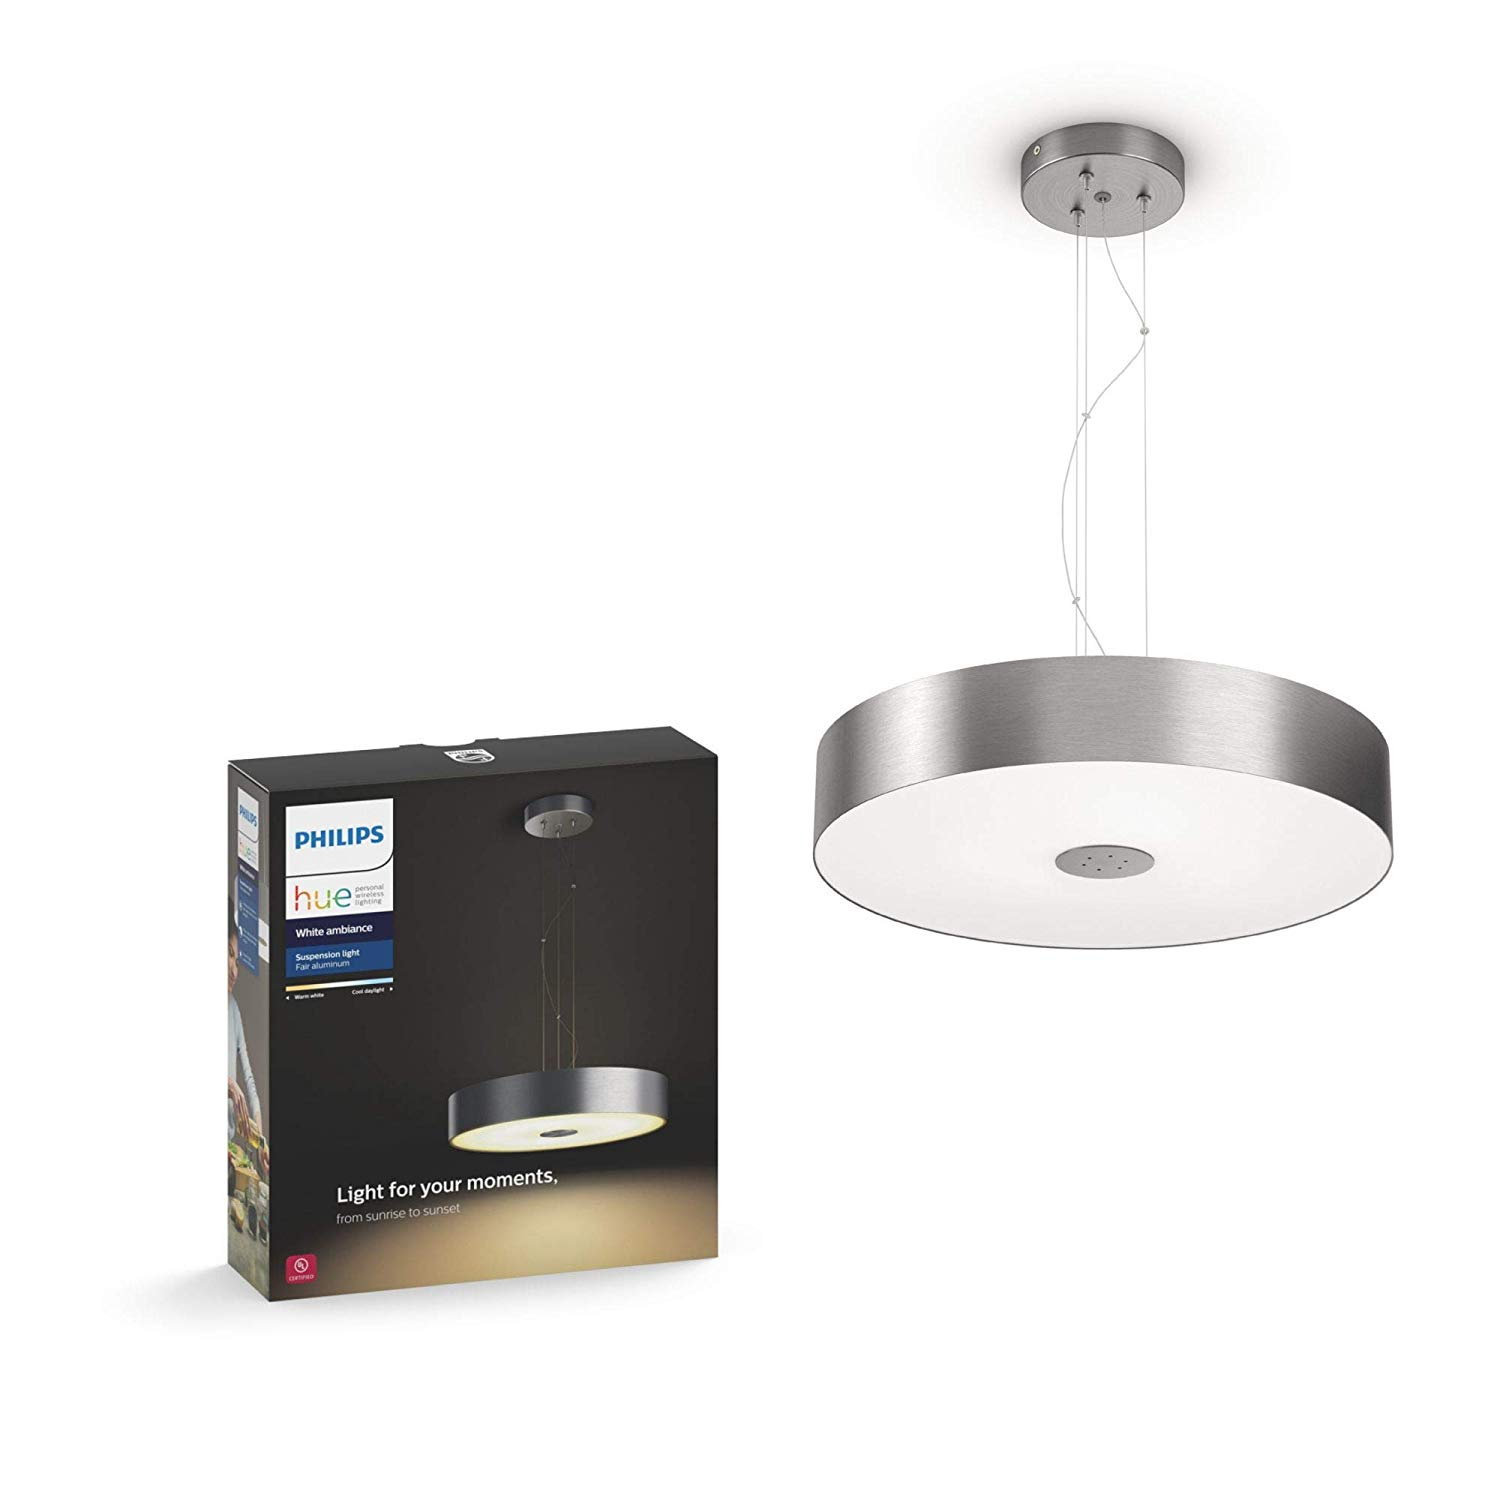 Philips Hue White Ambiance LED Suspension Light - nhập khẩu